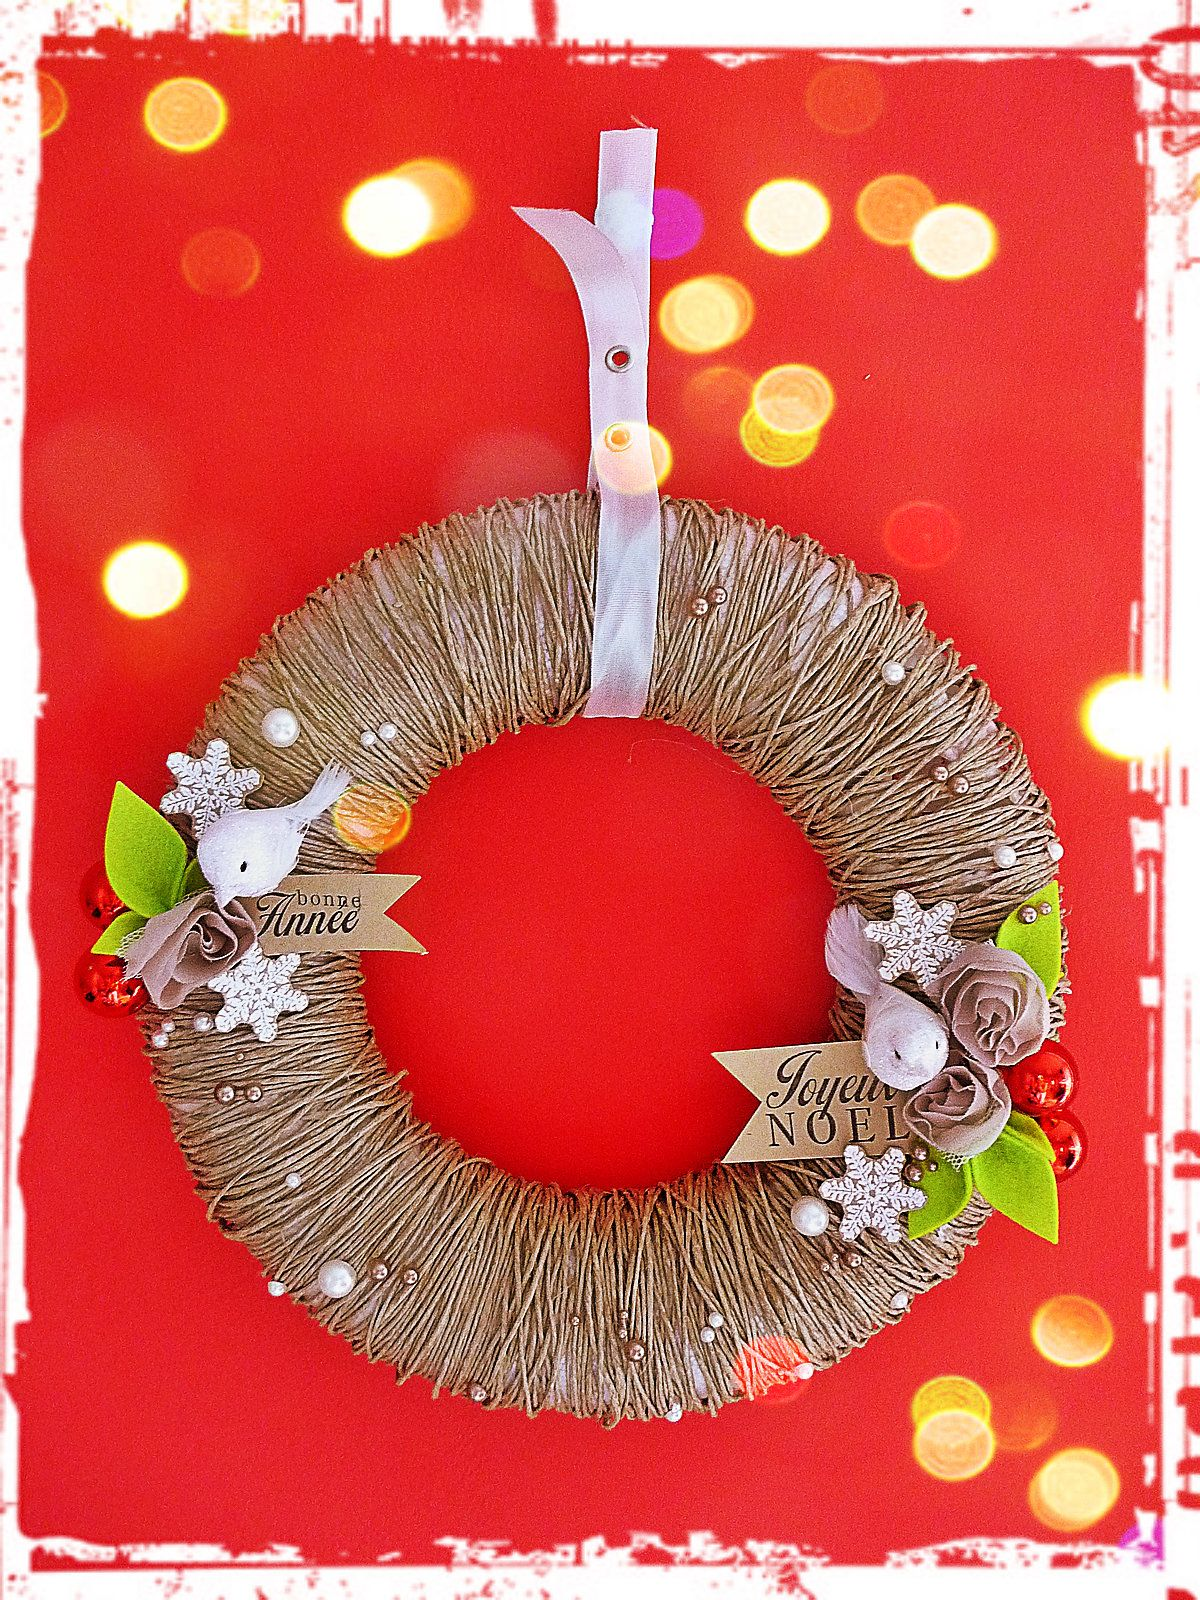 Couronne Decoration Couronne Ficelle Noël Christmas Pinterest Couronne